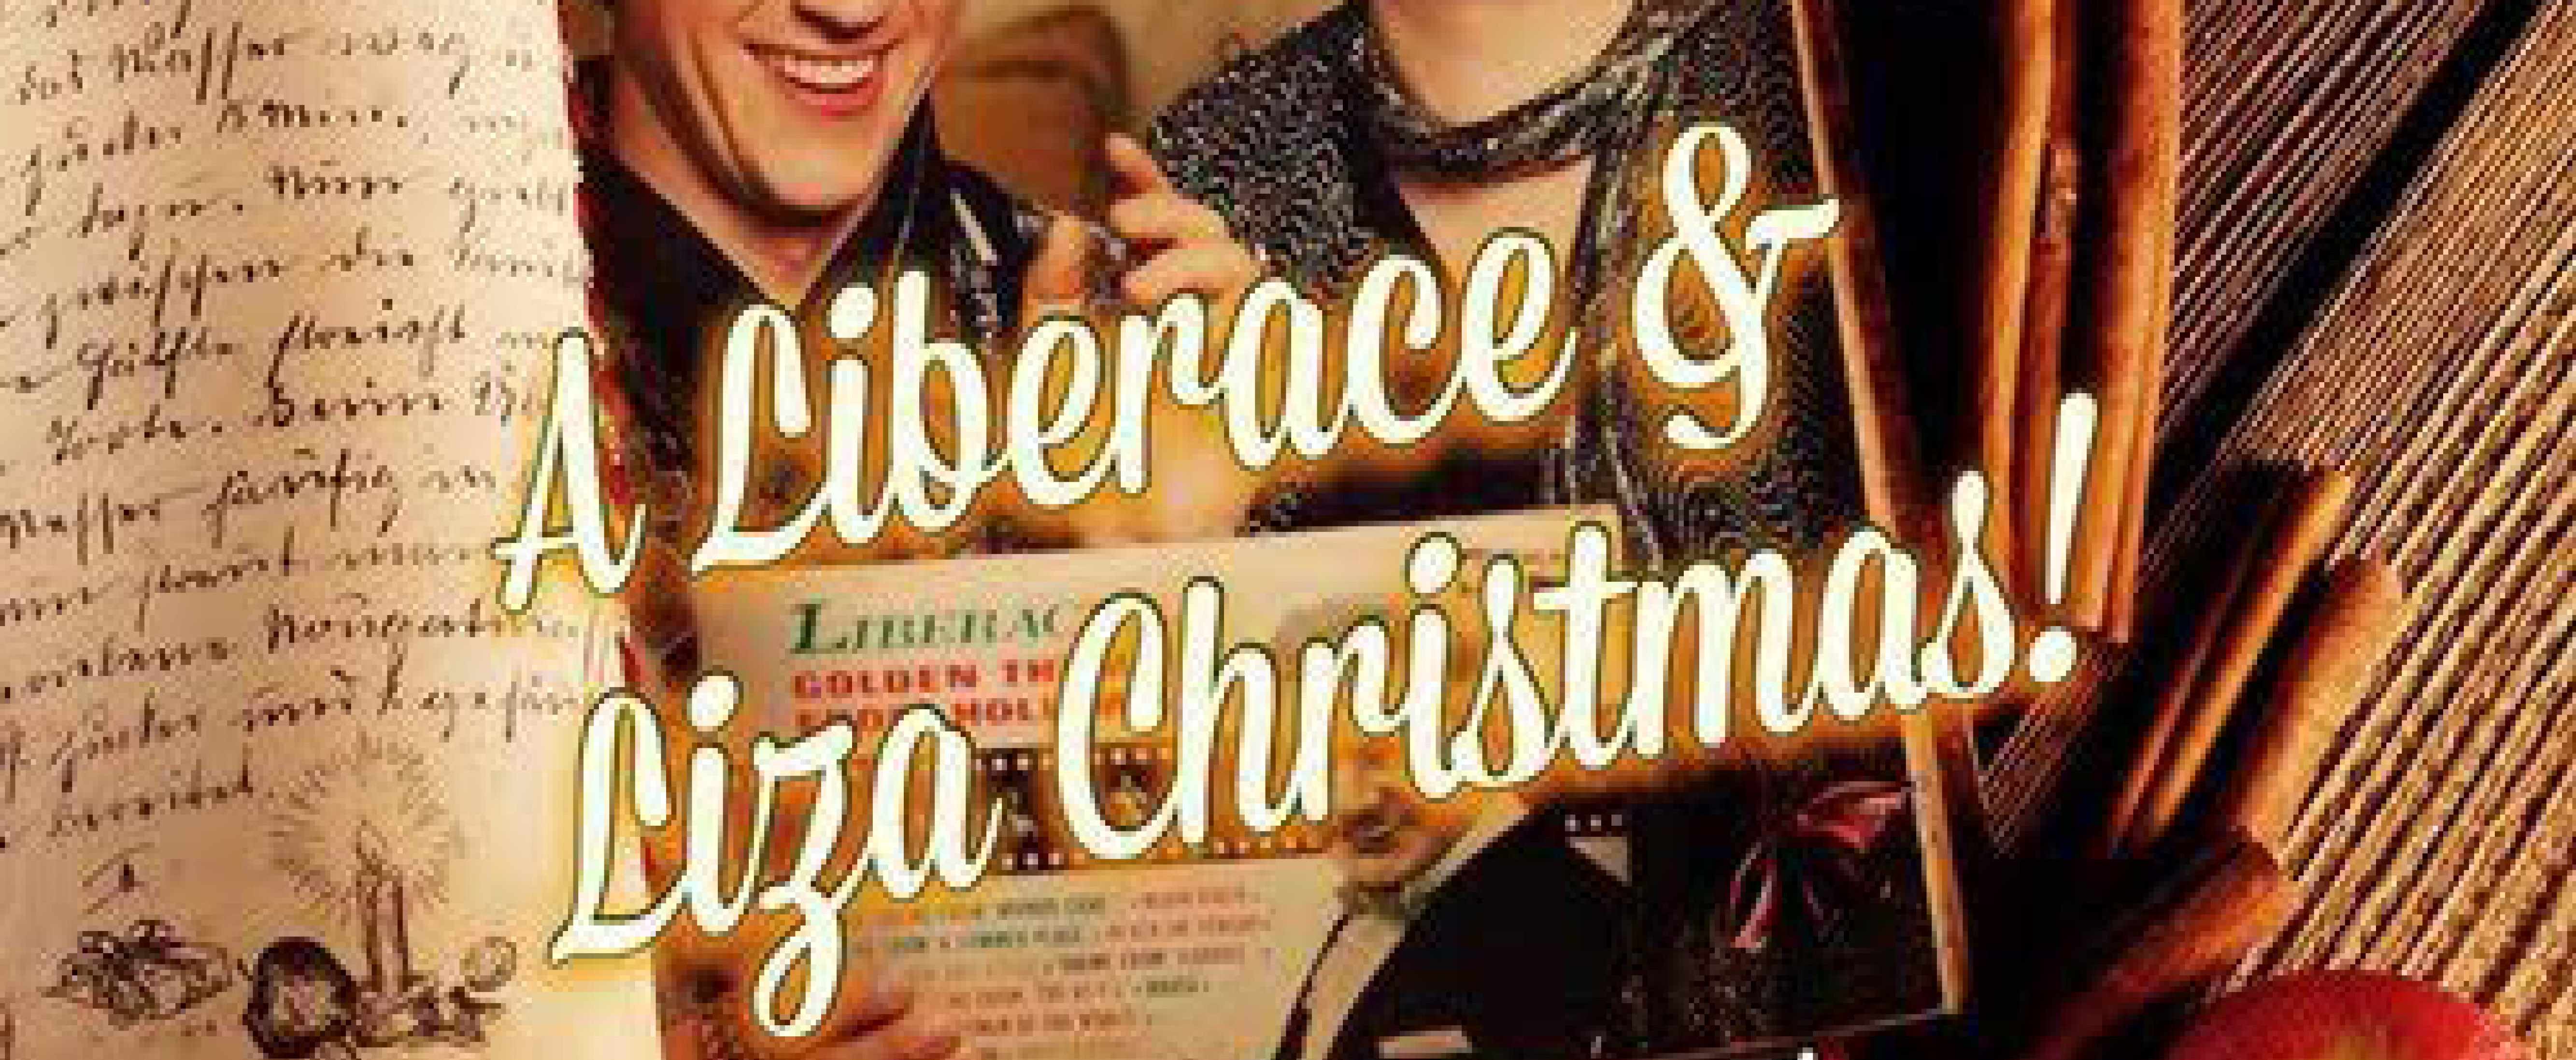 Rubber-Chicken_CMAS-event-homepage-banner